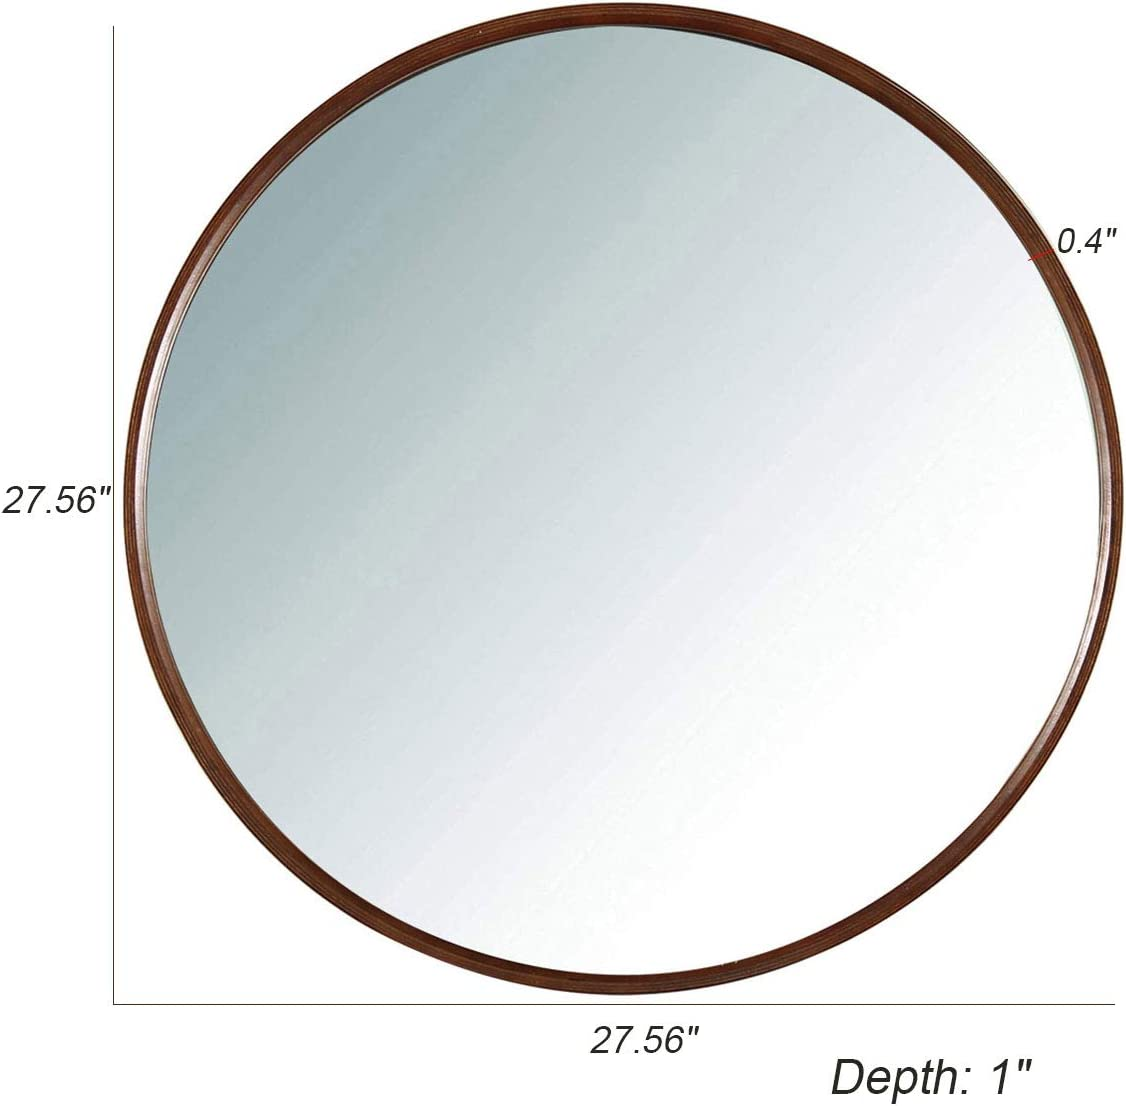 TinyTimes 27.56 Large Wall Mirror, Round Vanity Mirror, Wooden Frame, Clean, Wall Decor, for Entryways, Living Rooms, Bathroom and More, Circle Wall Mirror Dark Brown